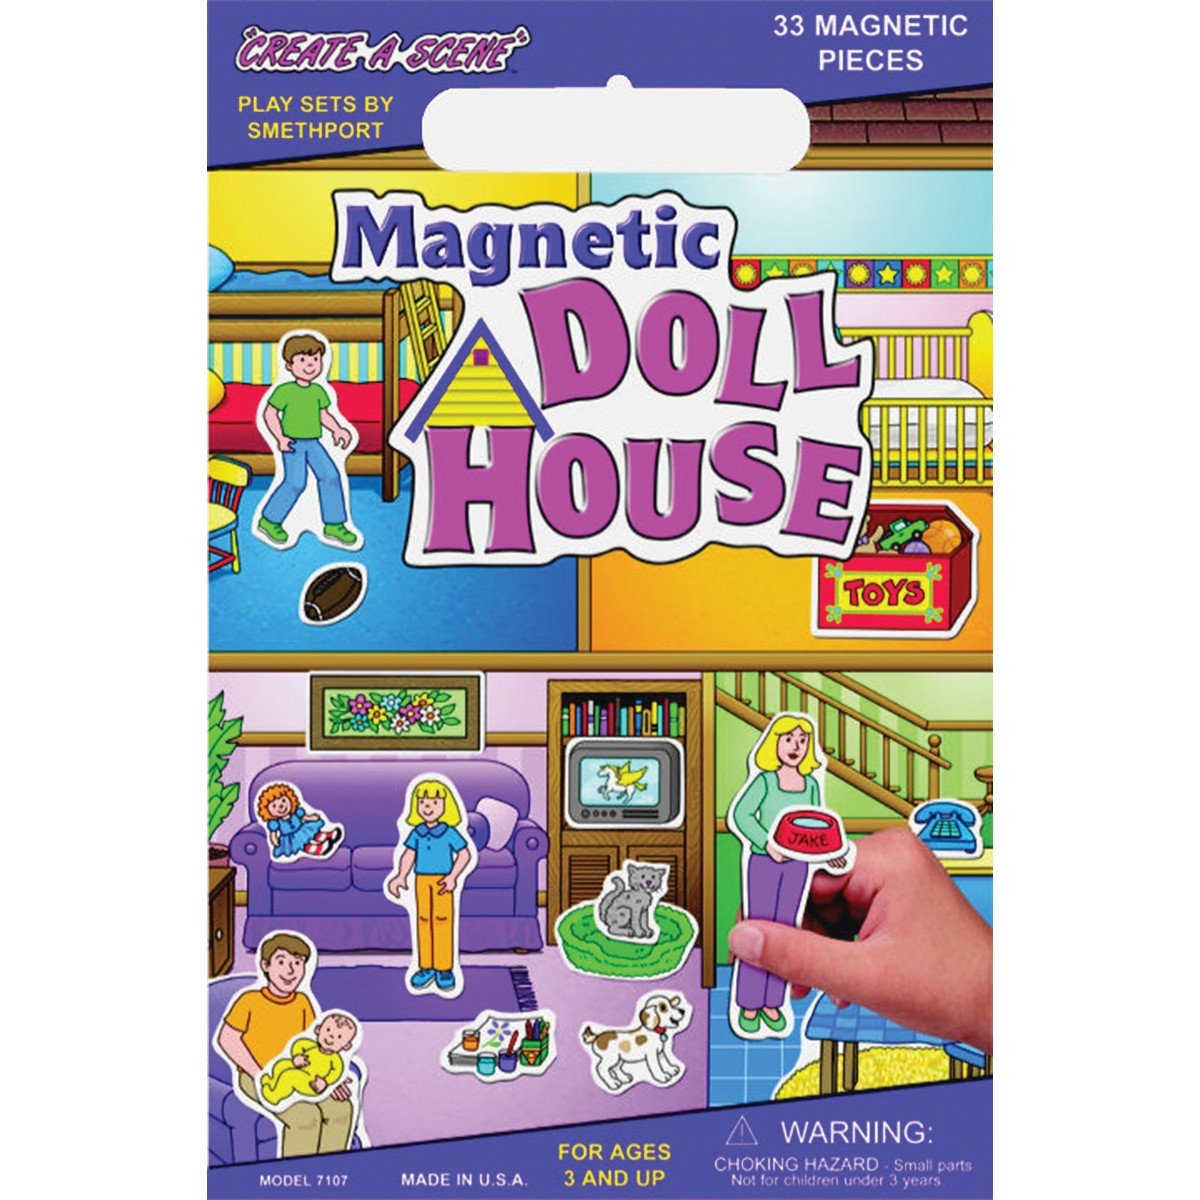 PlayMonster Magnetic Create-A-Scene Doll House PartNumber: 004V009873941000P KsnValue: 9873941 MfgPartNumber: 095098